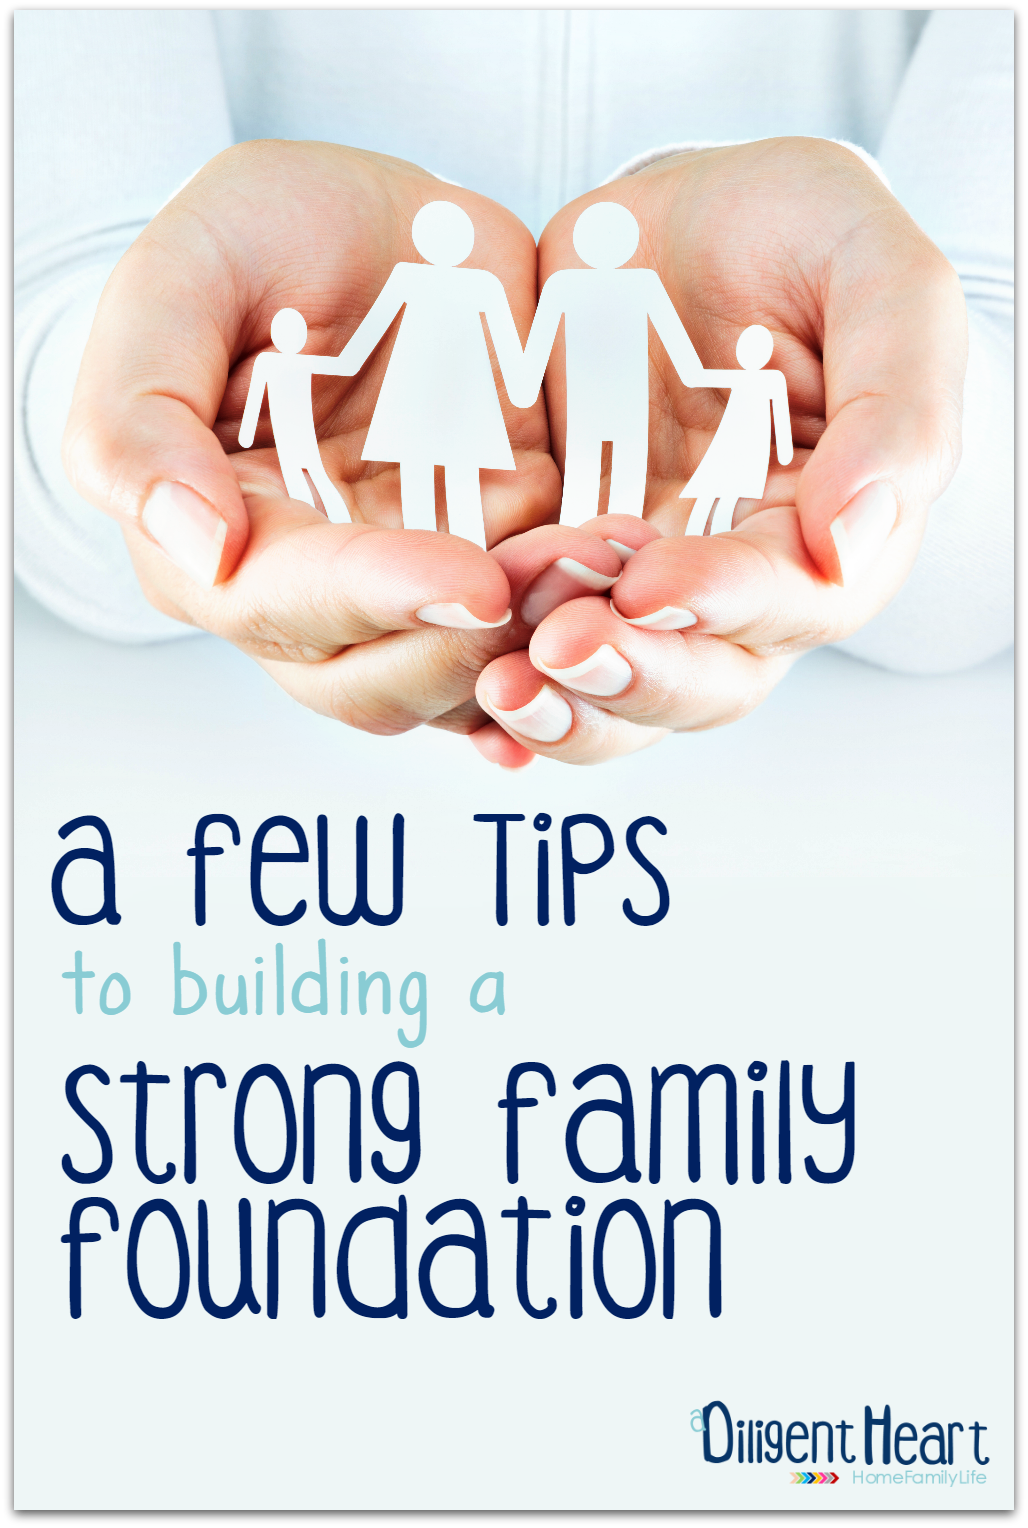 Looking for some tips to help you build a strong family foundation? I'm sharing a few of my personal tried-and-true tips!| adiligentheart.com